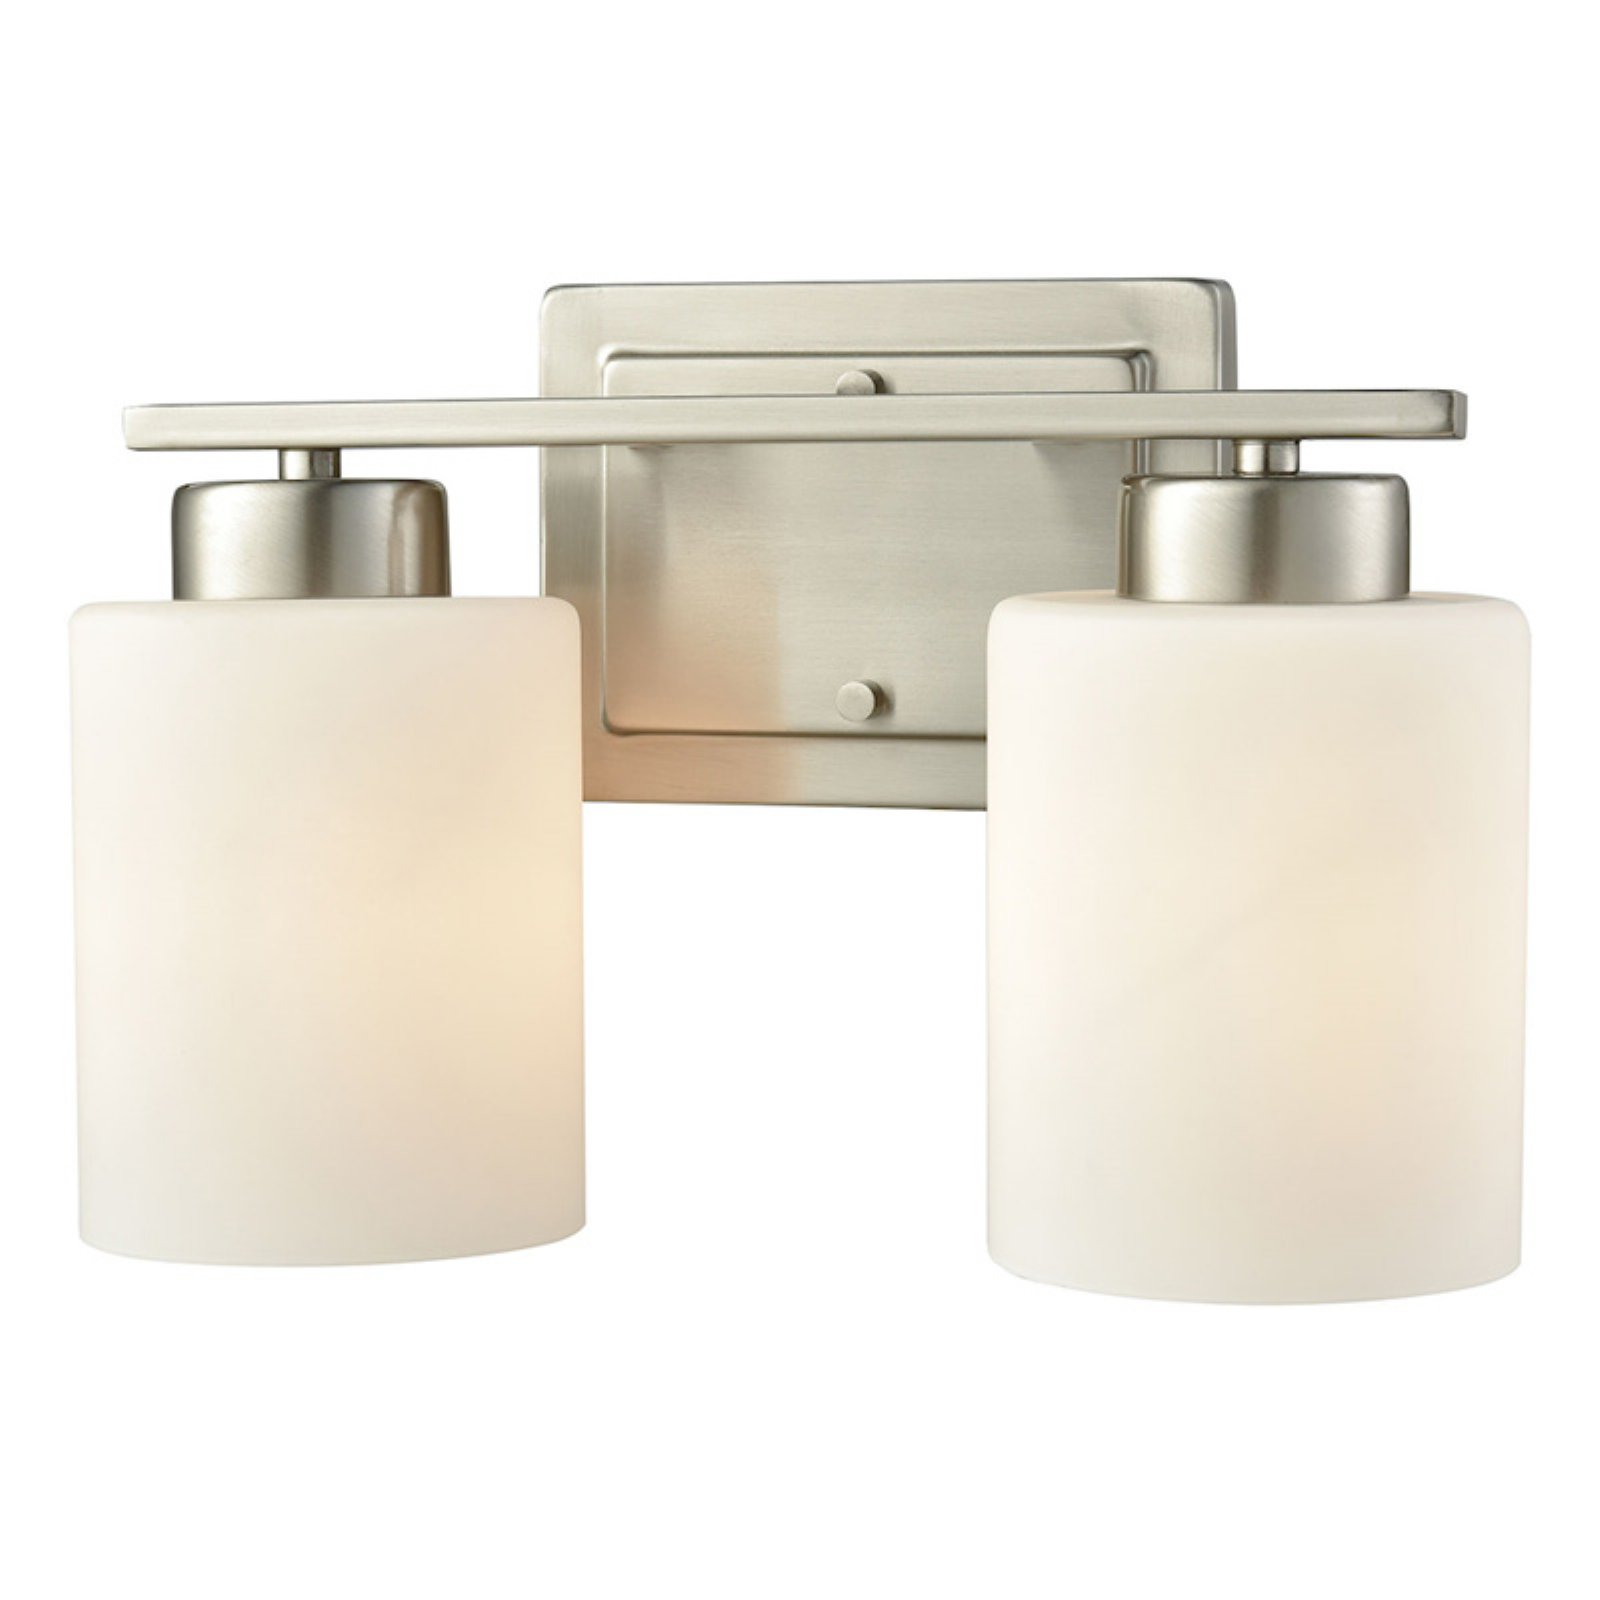 Thomas Lighting Summit Place CN57921 Vanity Light by Thomas Lighting